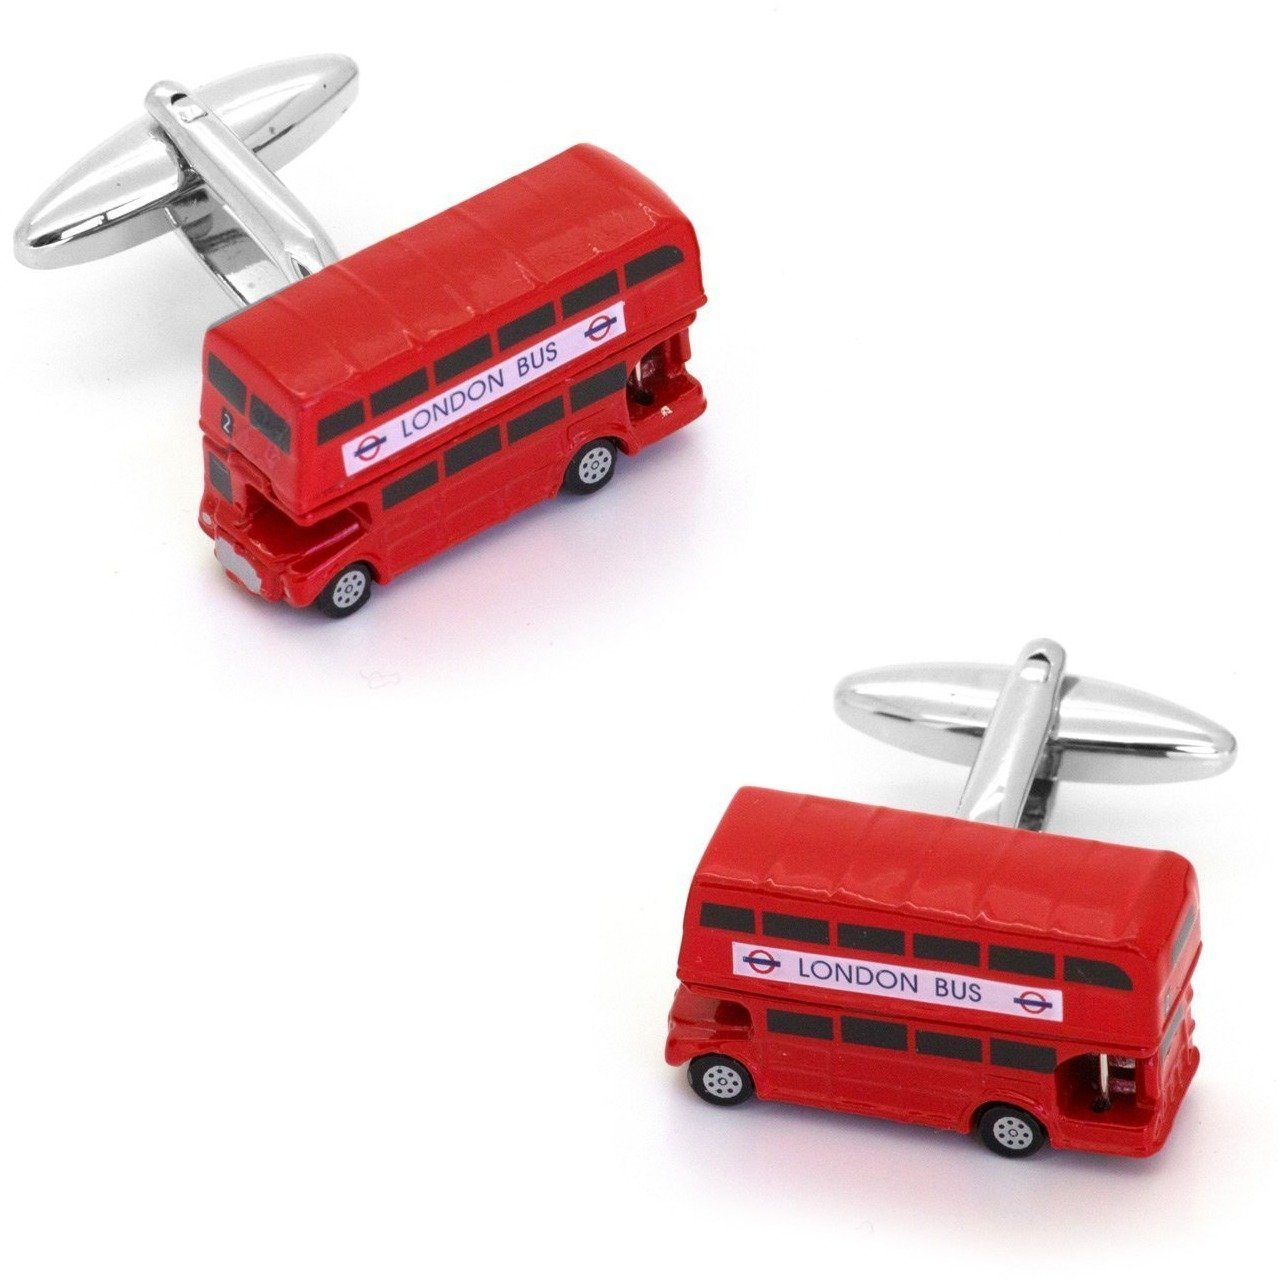 London Bus Cufflinks, Novelty Cufflinks, Cuffed.com.au, CL8570, $29.00